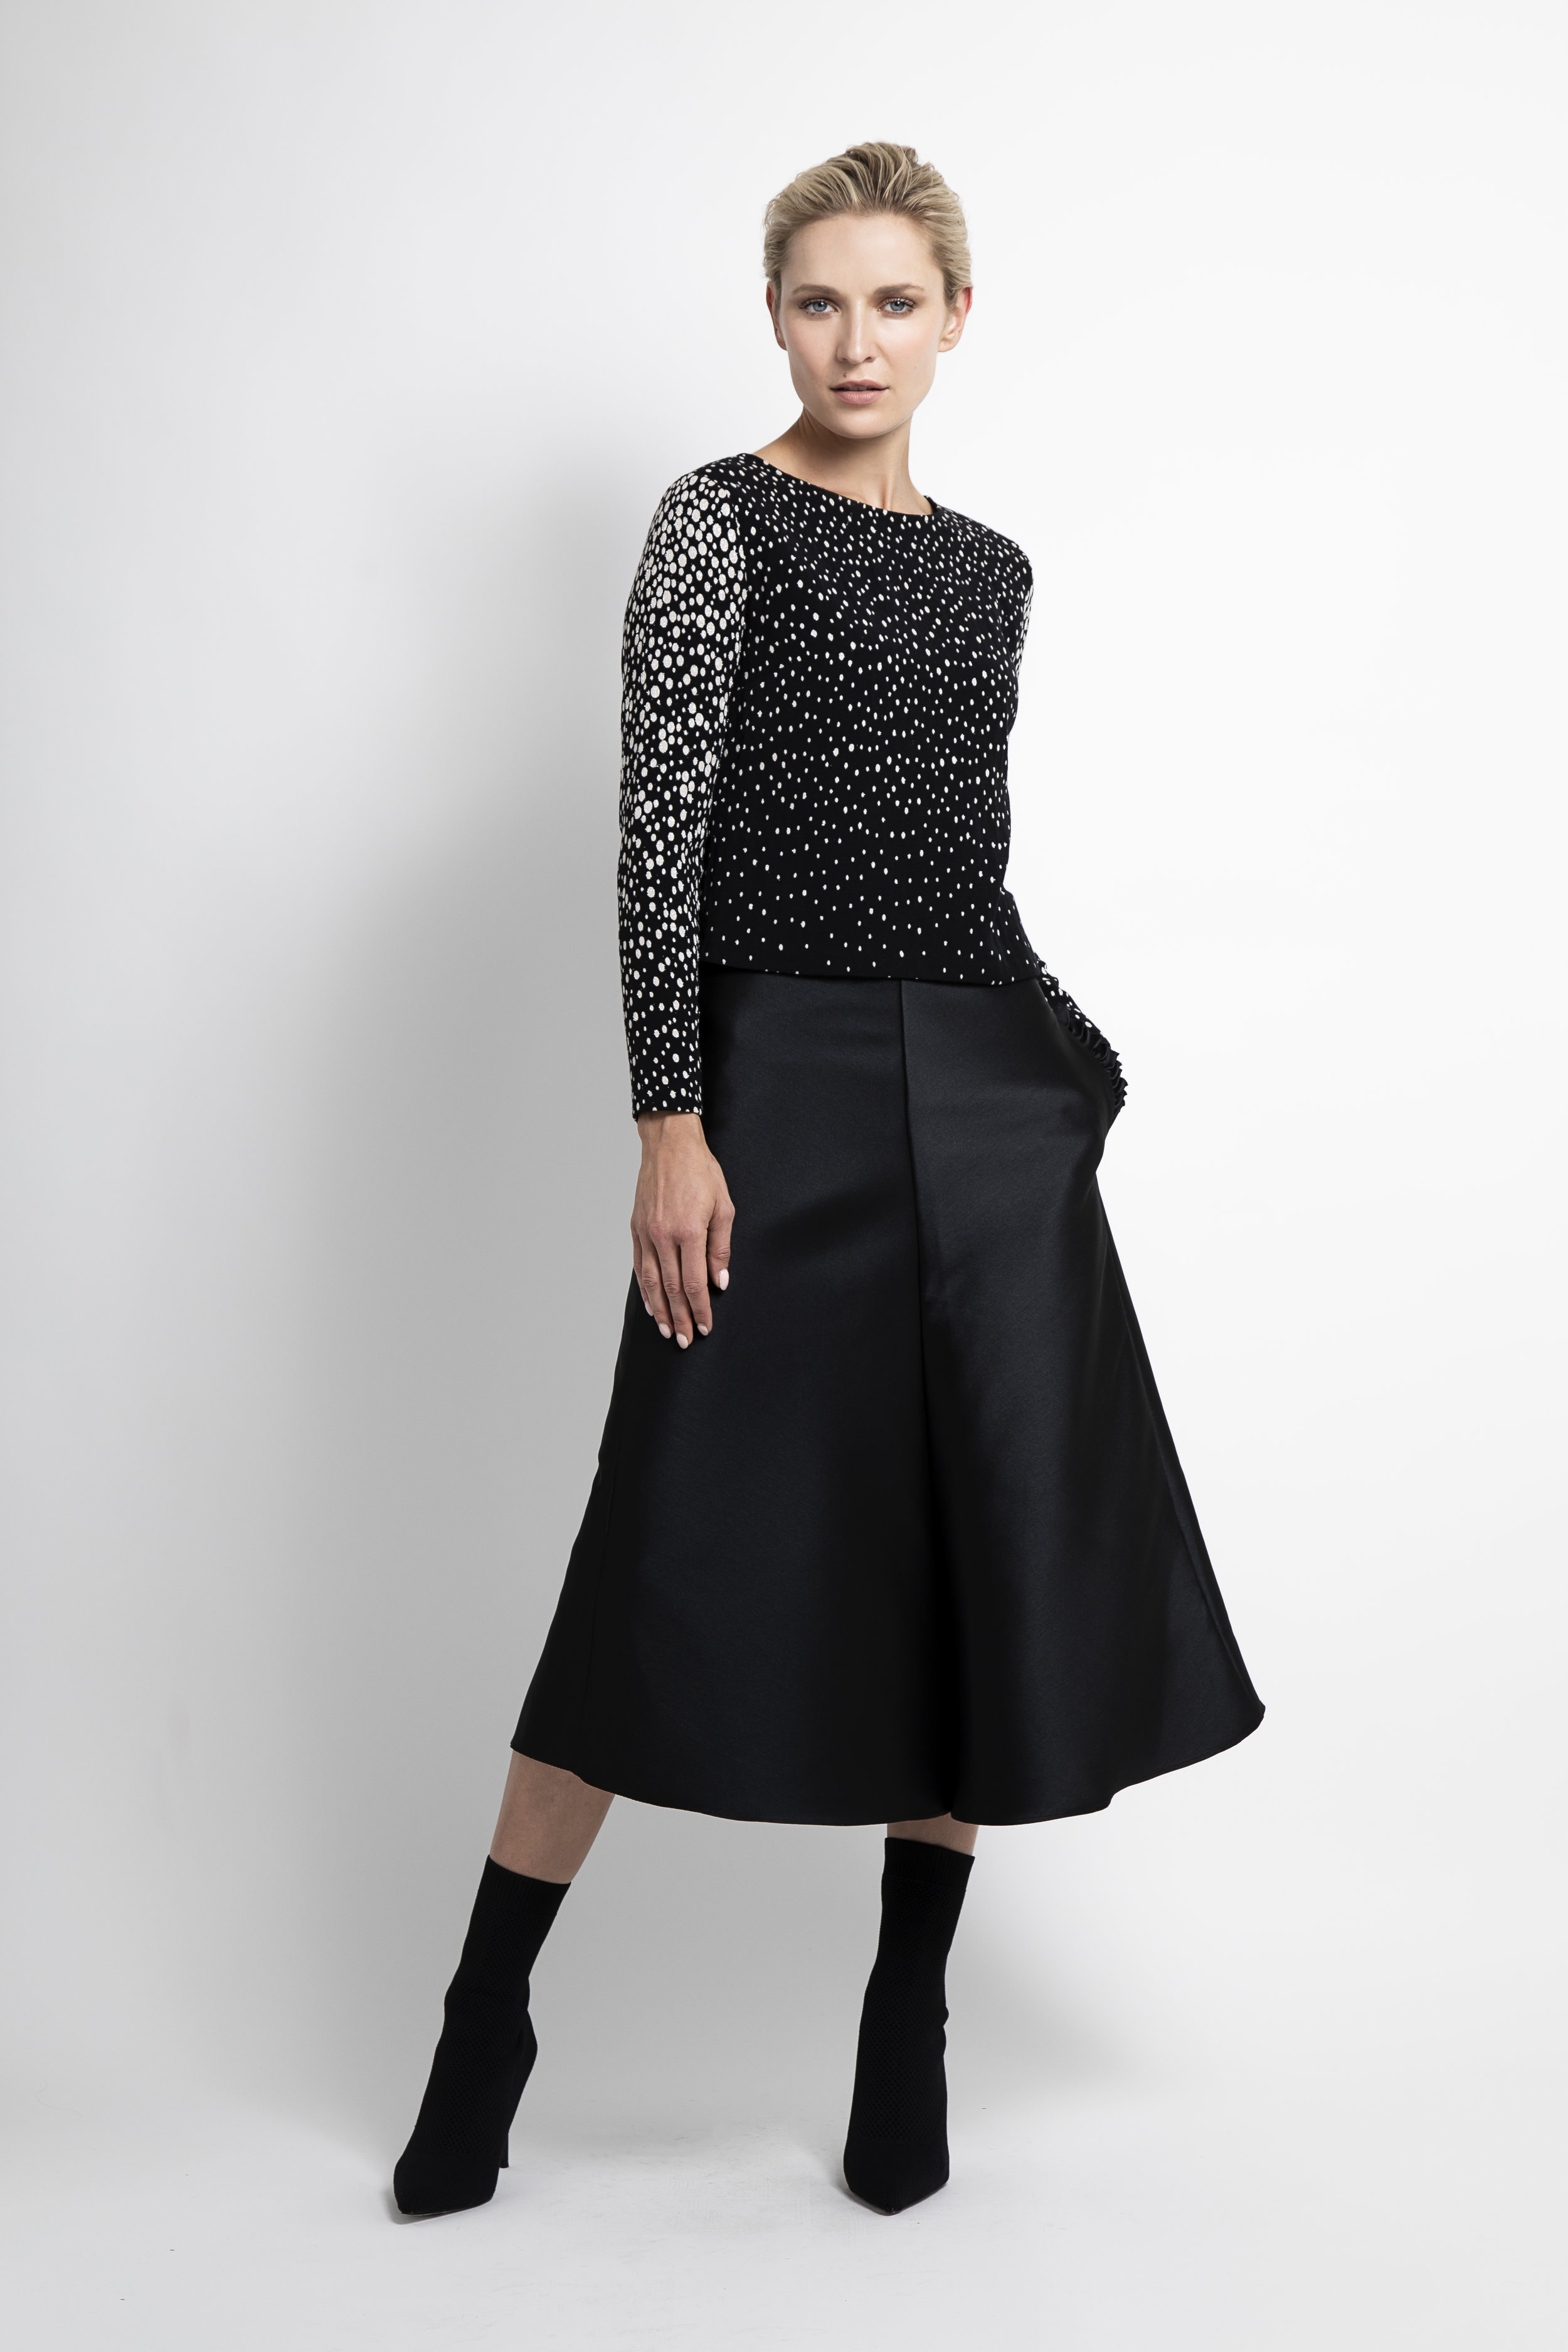 Joanie Top (with Piper Skirt)